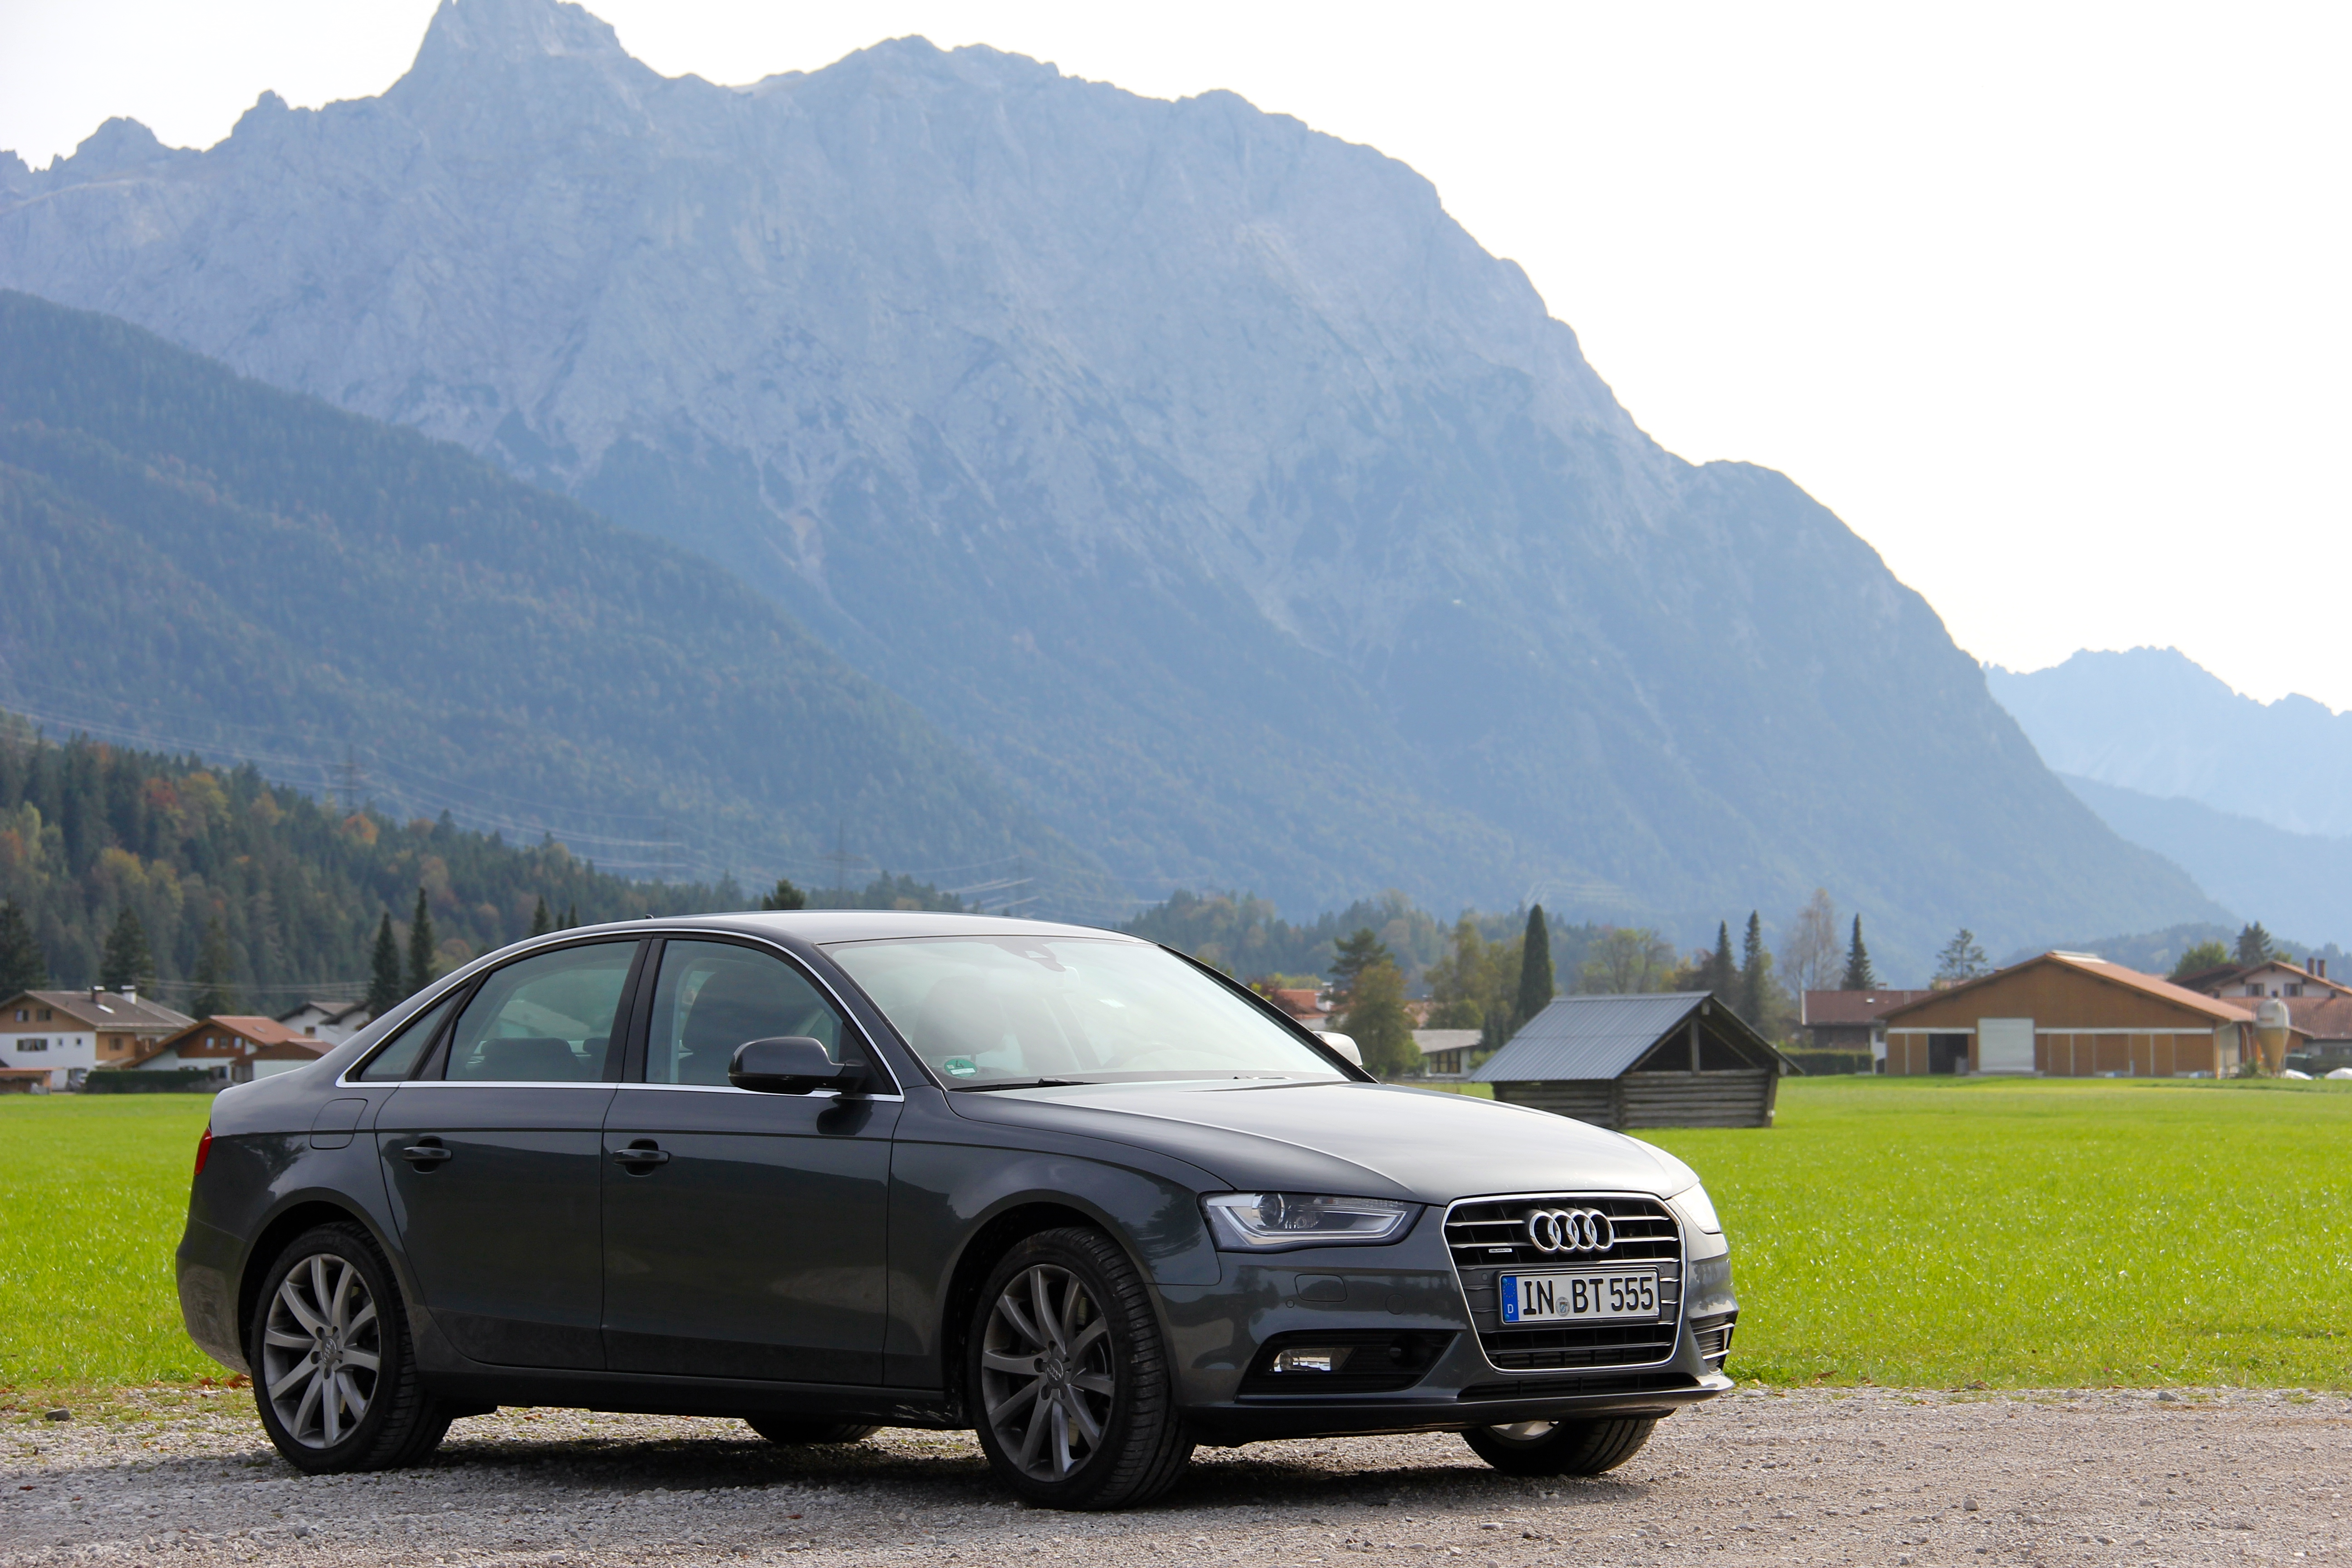 2014 audi a4 3 0 tdi review and road test the green car driver. Black Bedroom Furniture Sets. Home Design Ideas